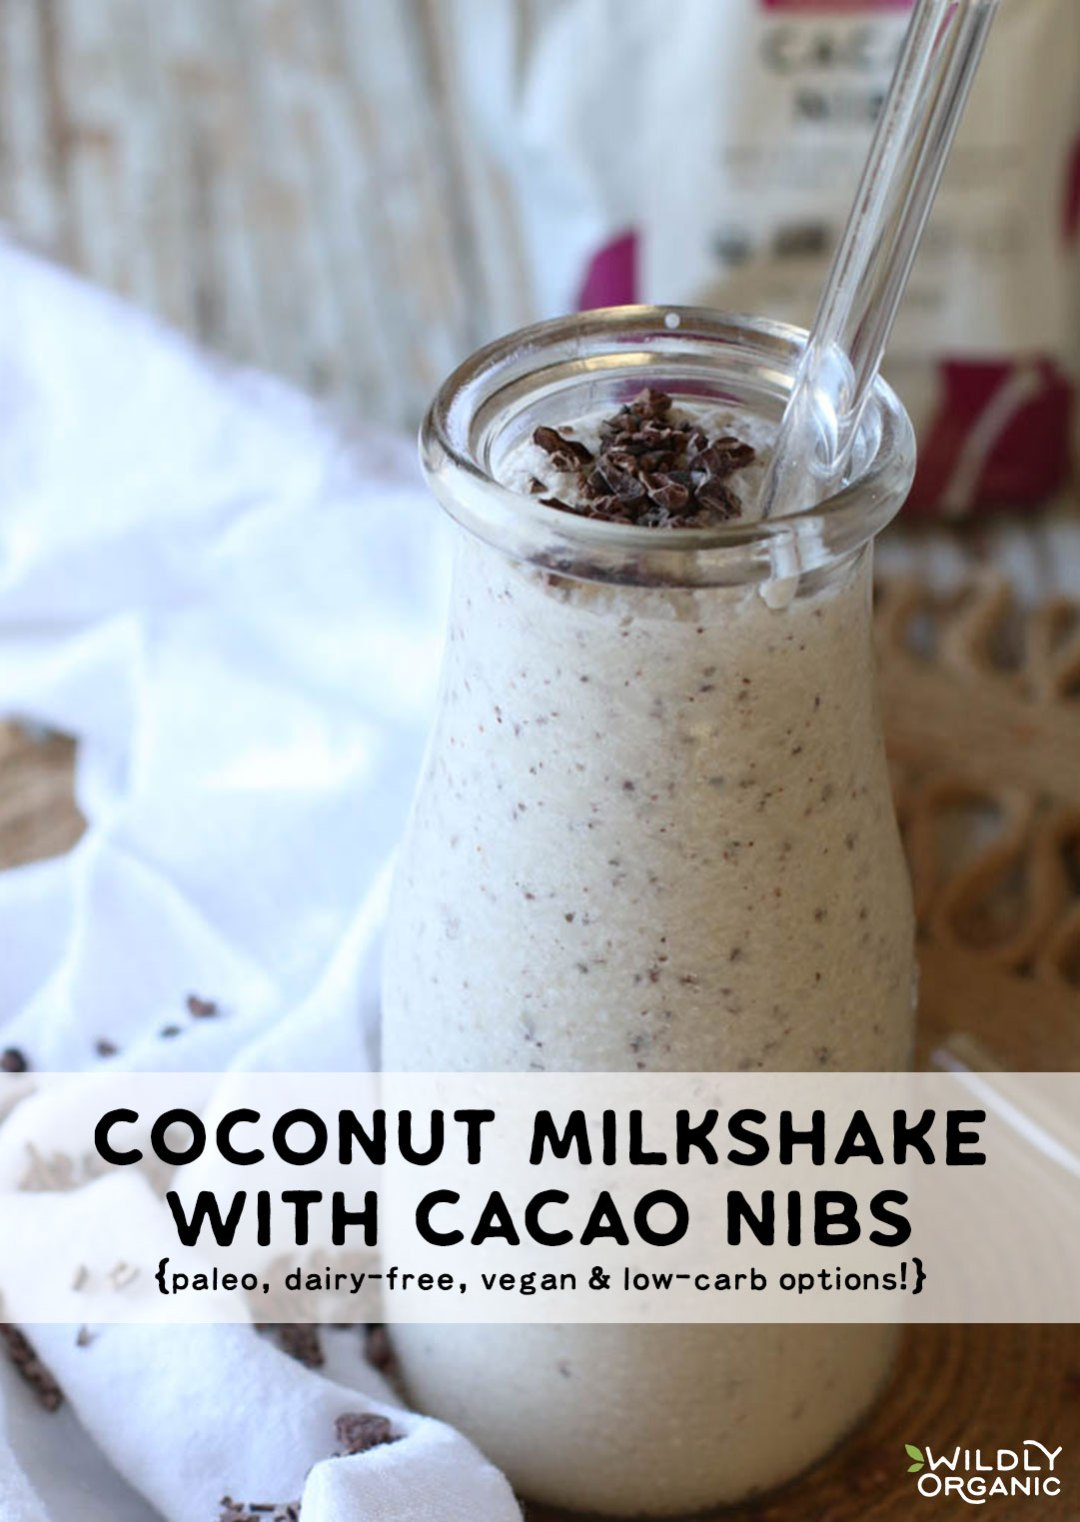 Summer will be here eventually, and you'll be reaching for something cold, creamy, and delish! Like this Coconut Milkshake with Cacao Nibs! It's Paleo, dairy-free, and has vegan and low-carb options, plus only 5 ingredients! Have one for a quick and nourishing breakfast or snack!